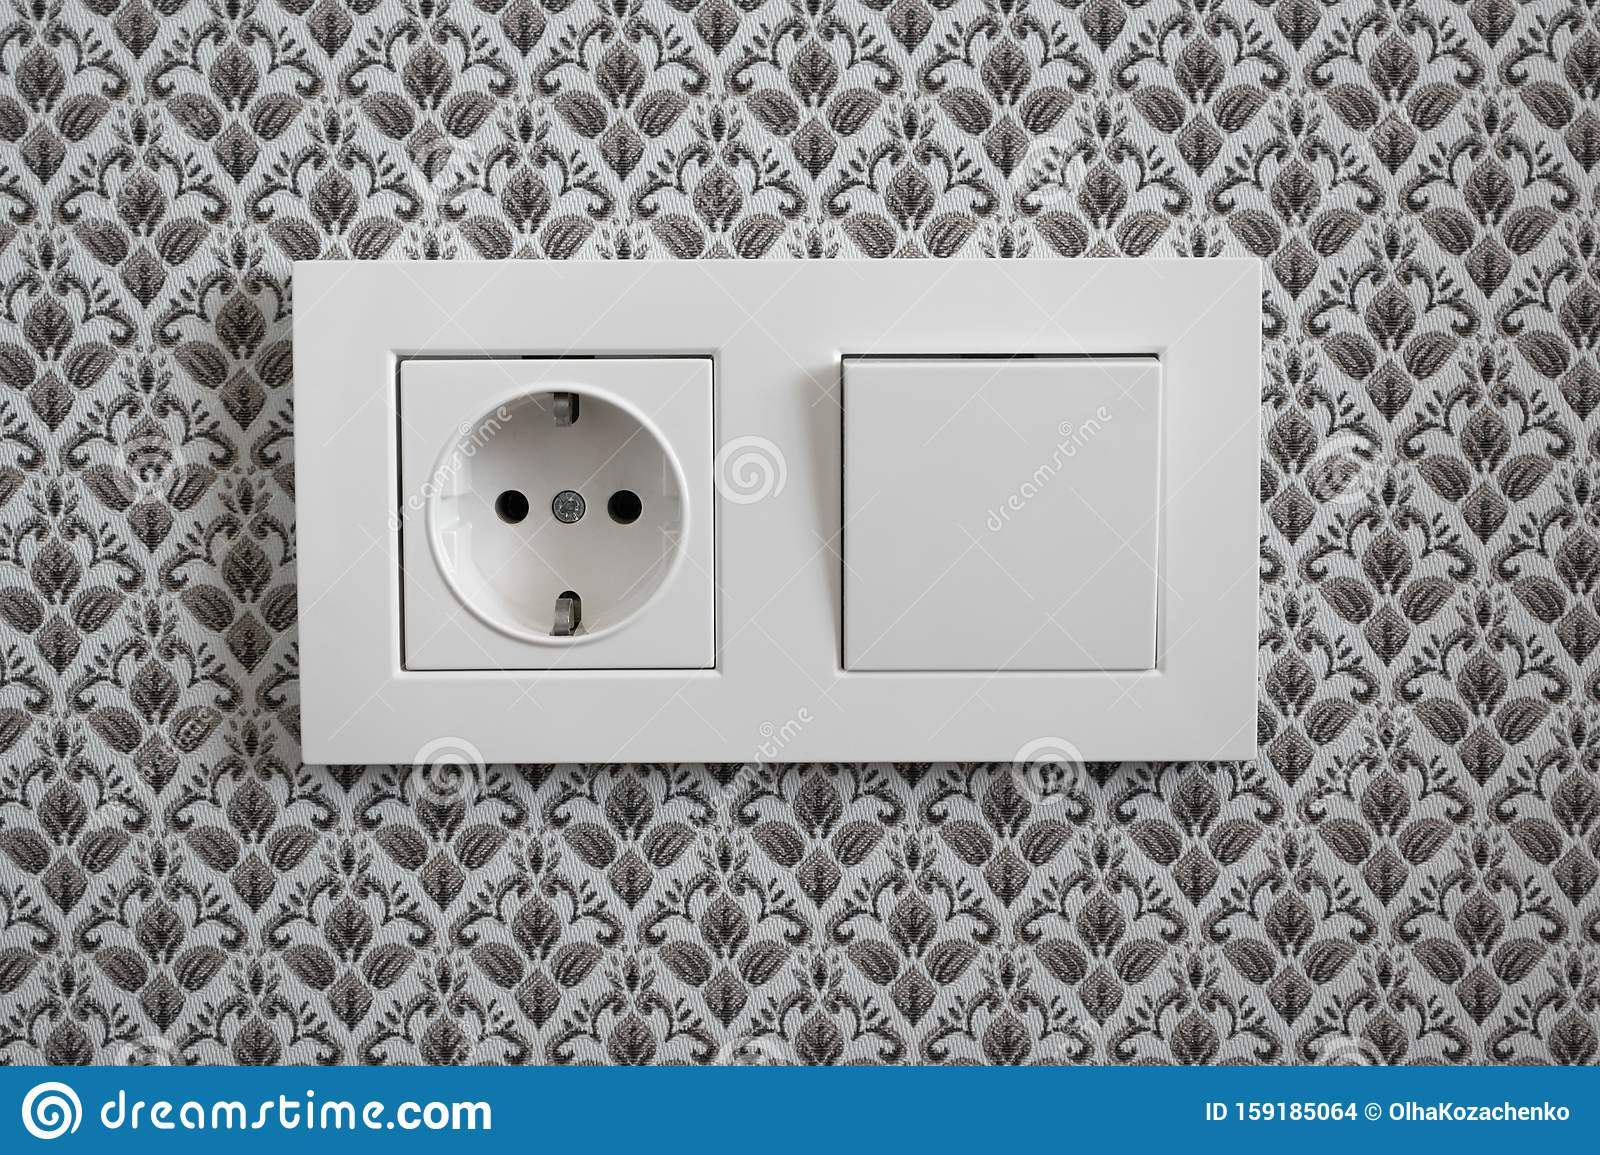 101 Double Light Switch Plate Photos Free Royalty Free Stock Photos From Dreamstime